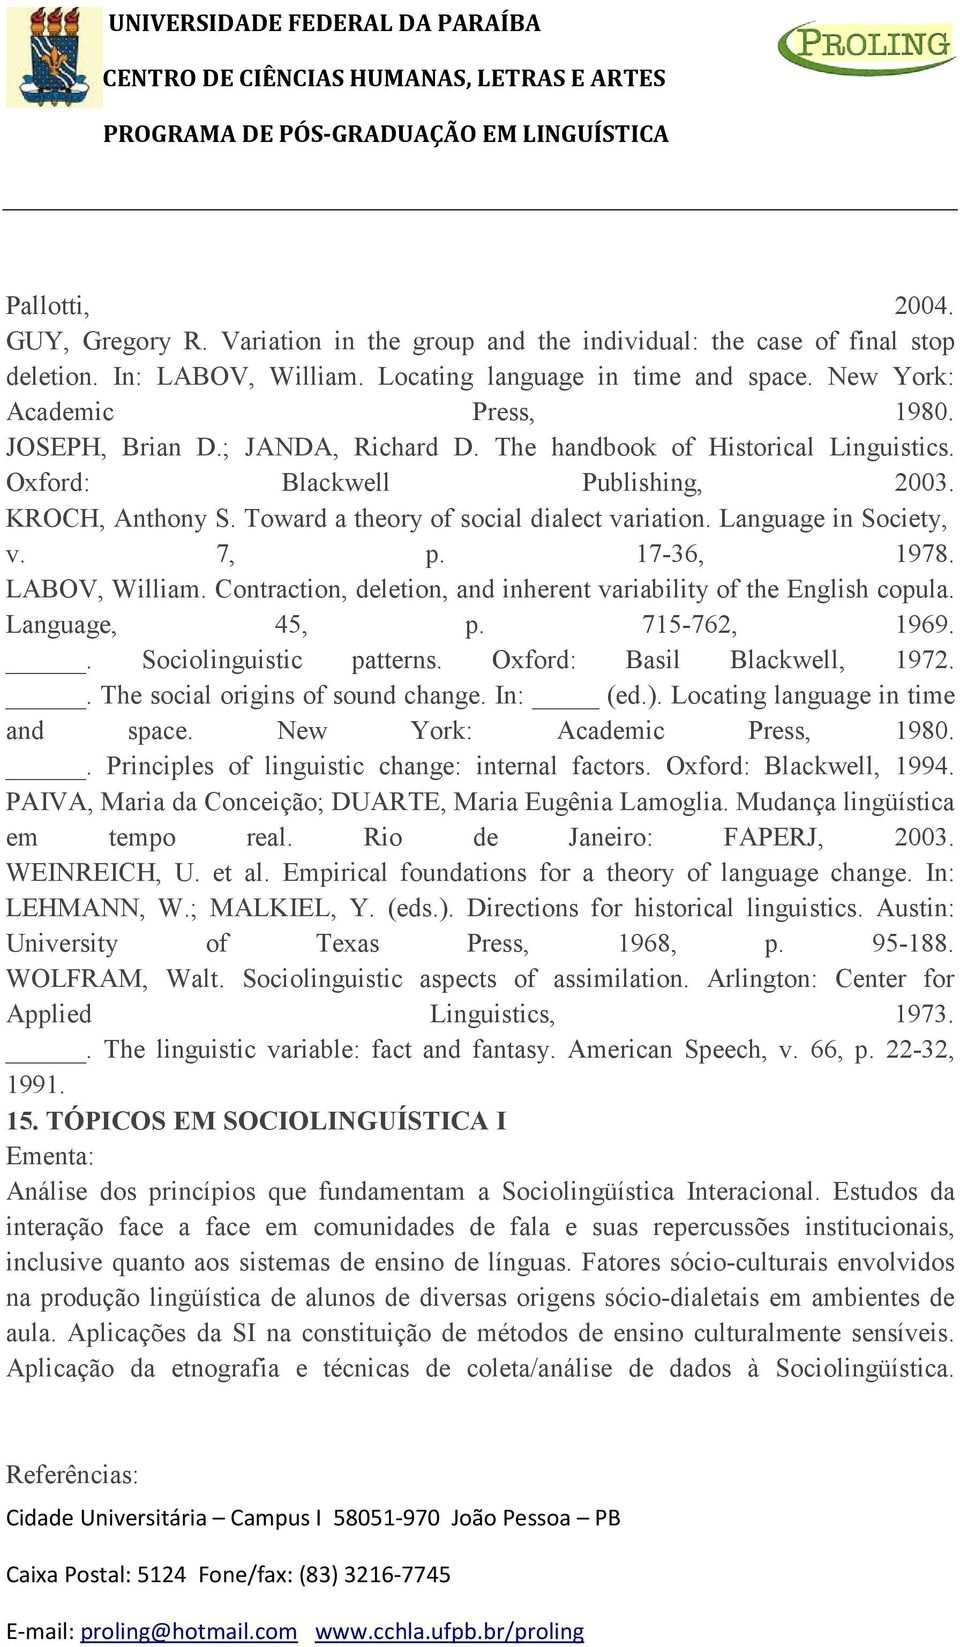 7, p. 17-36, 1978. LABOV, William. Contraction, deletion, and inherent variability of the English copula. Language, 45, p. 715-762, 1969.. Sociolinguistic patterns. Oxford: Basil Blackwell, 1972.